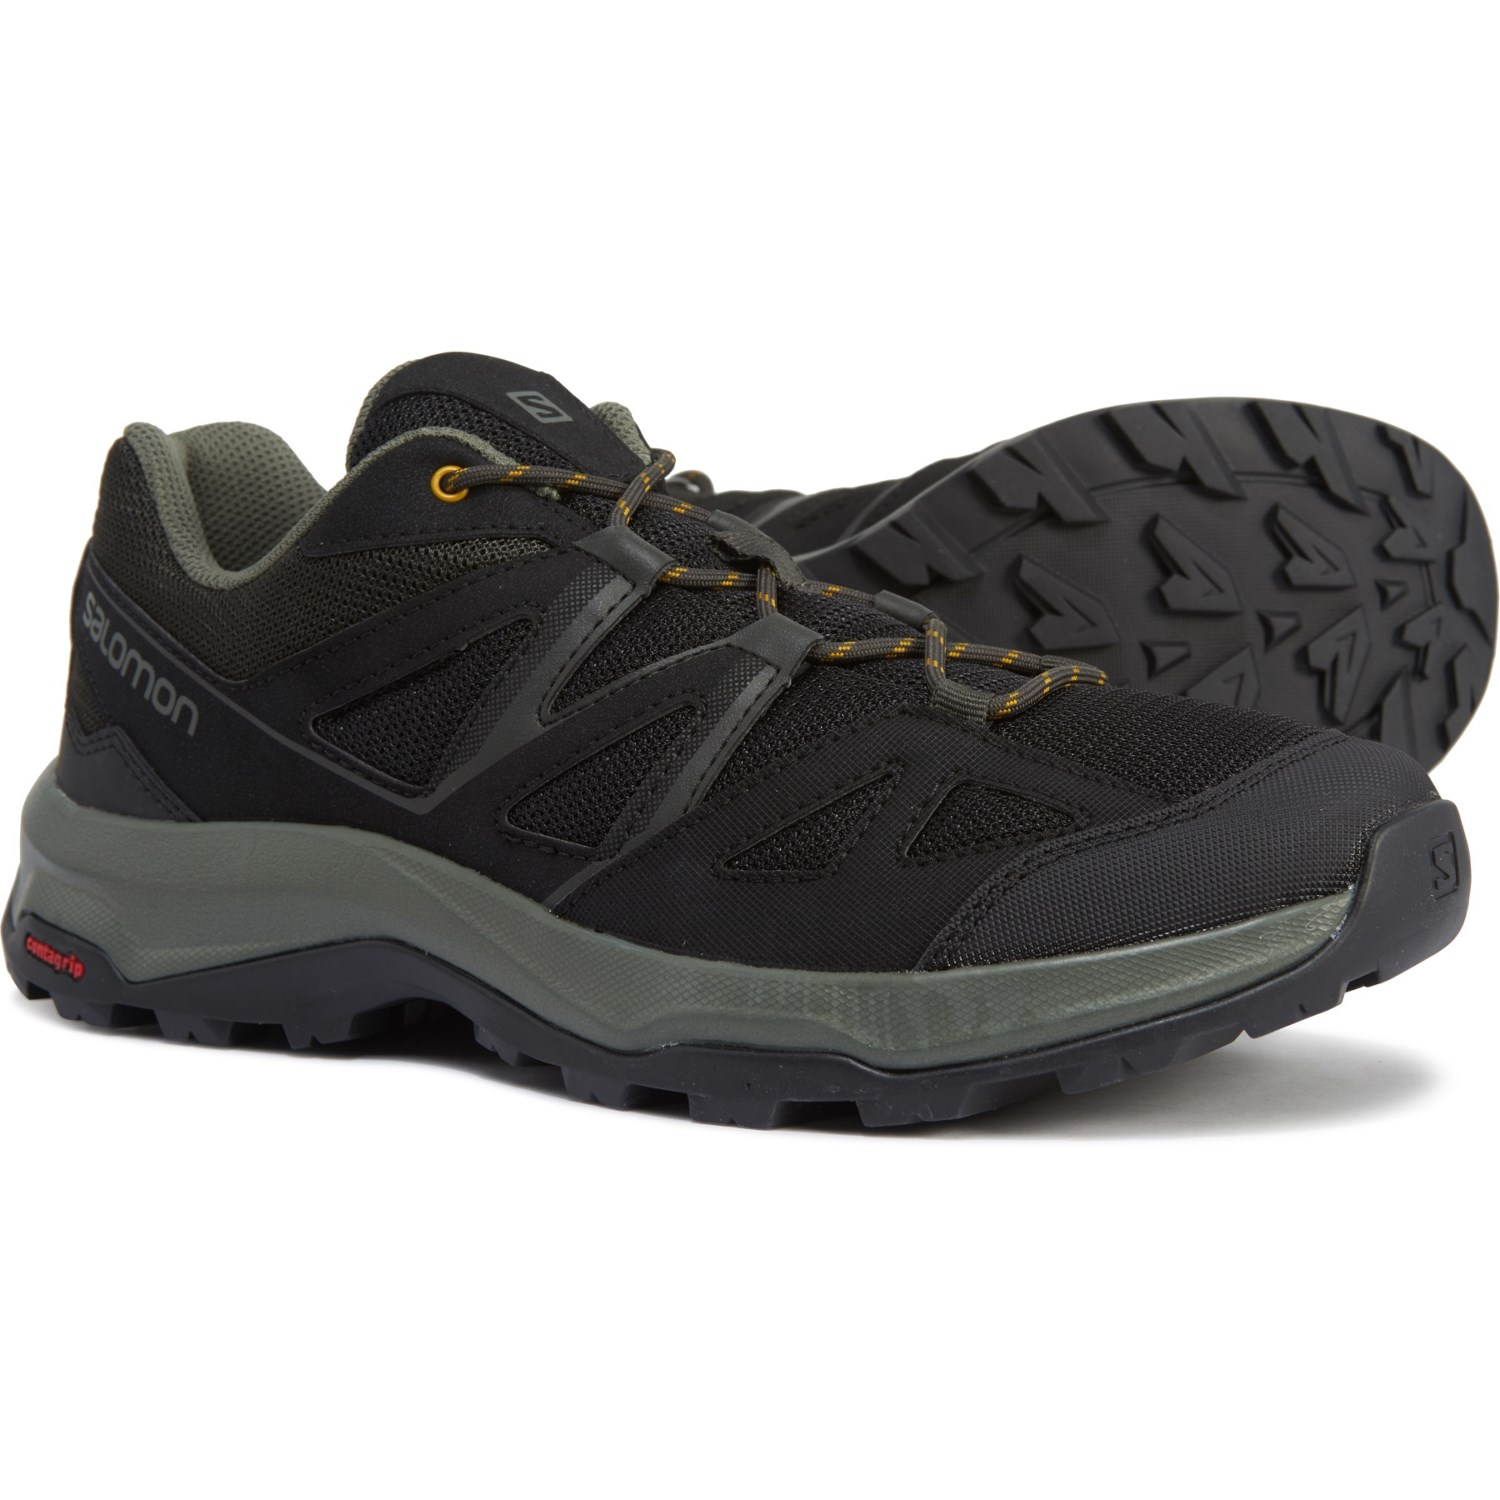 Salomon Impala Hiking Shoes (For Men)